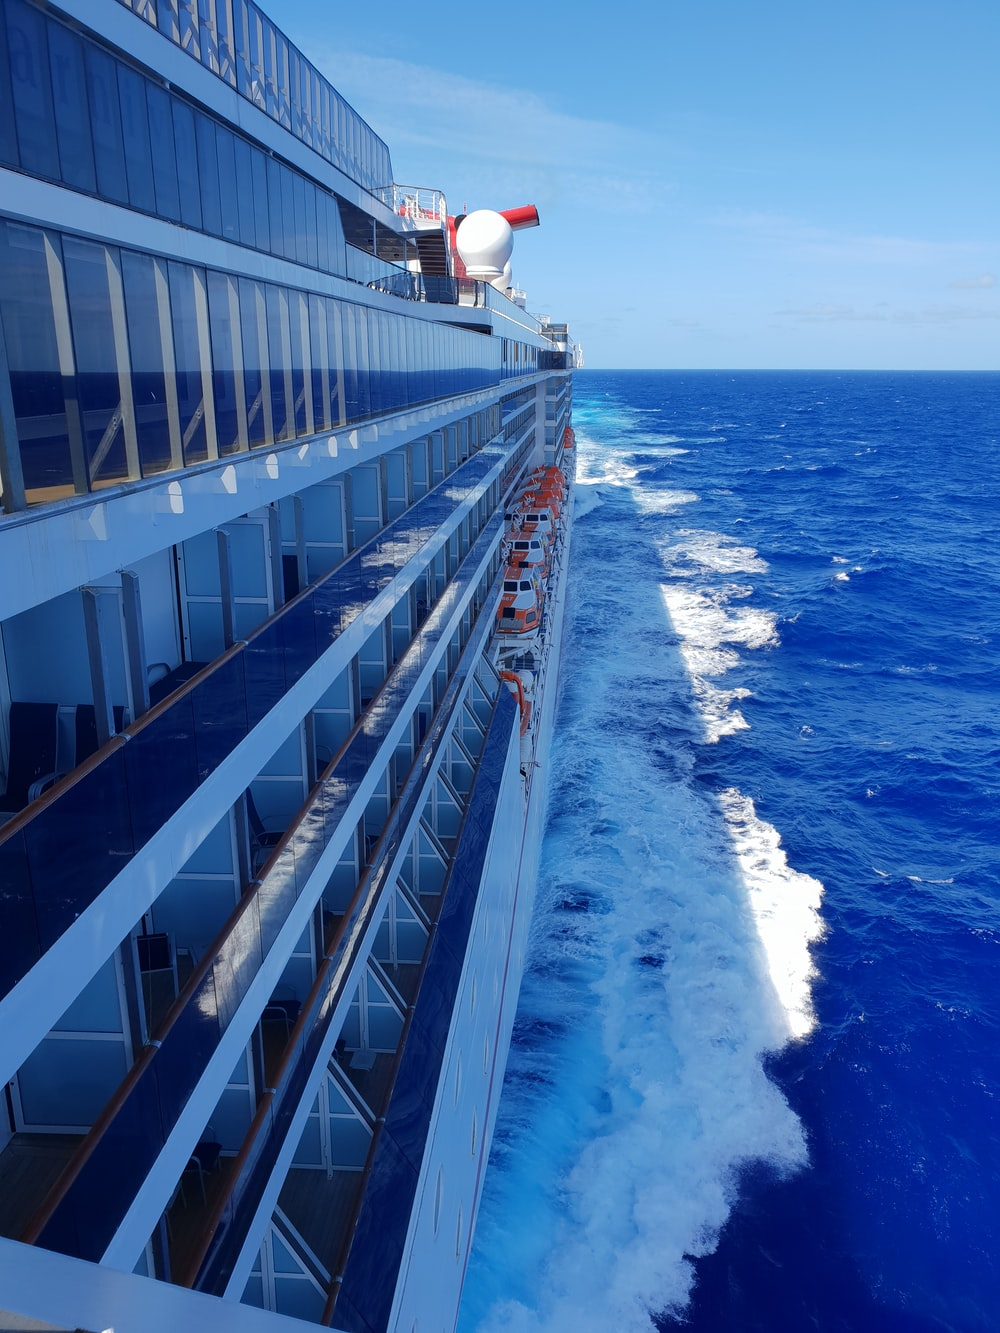 white and blue ship on sea during daytime